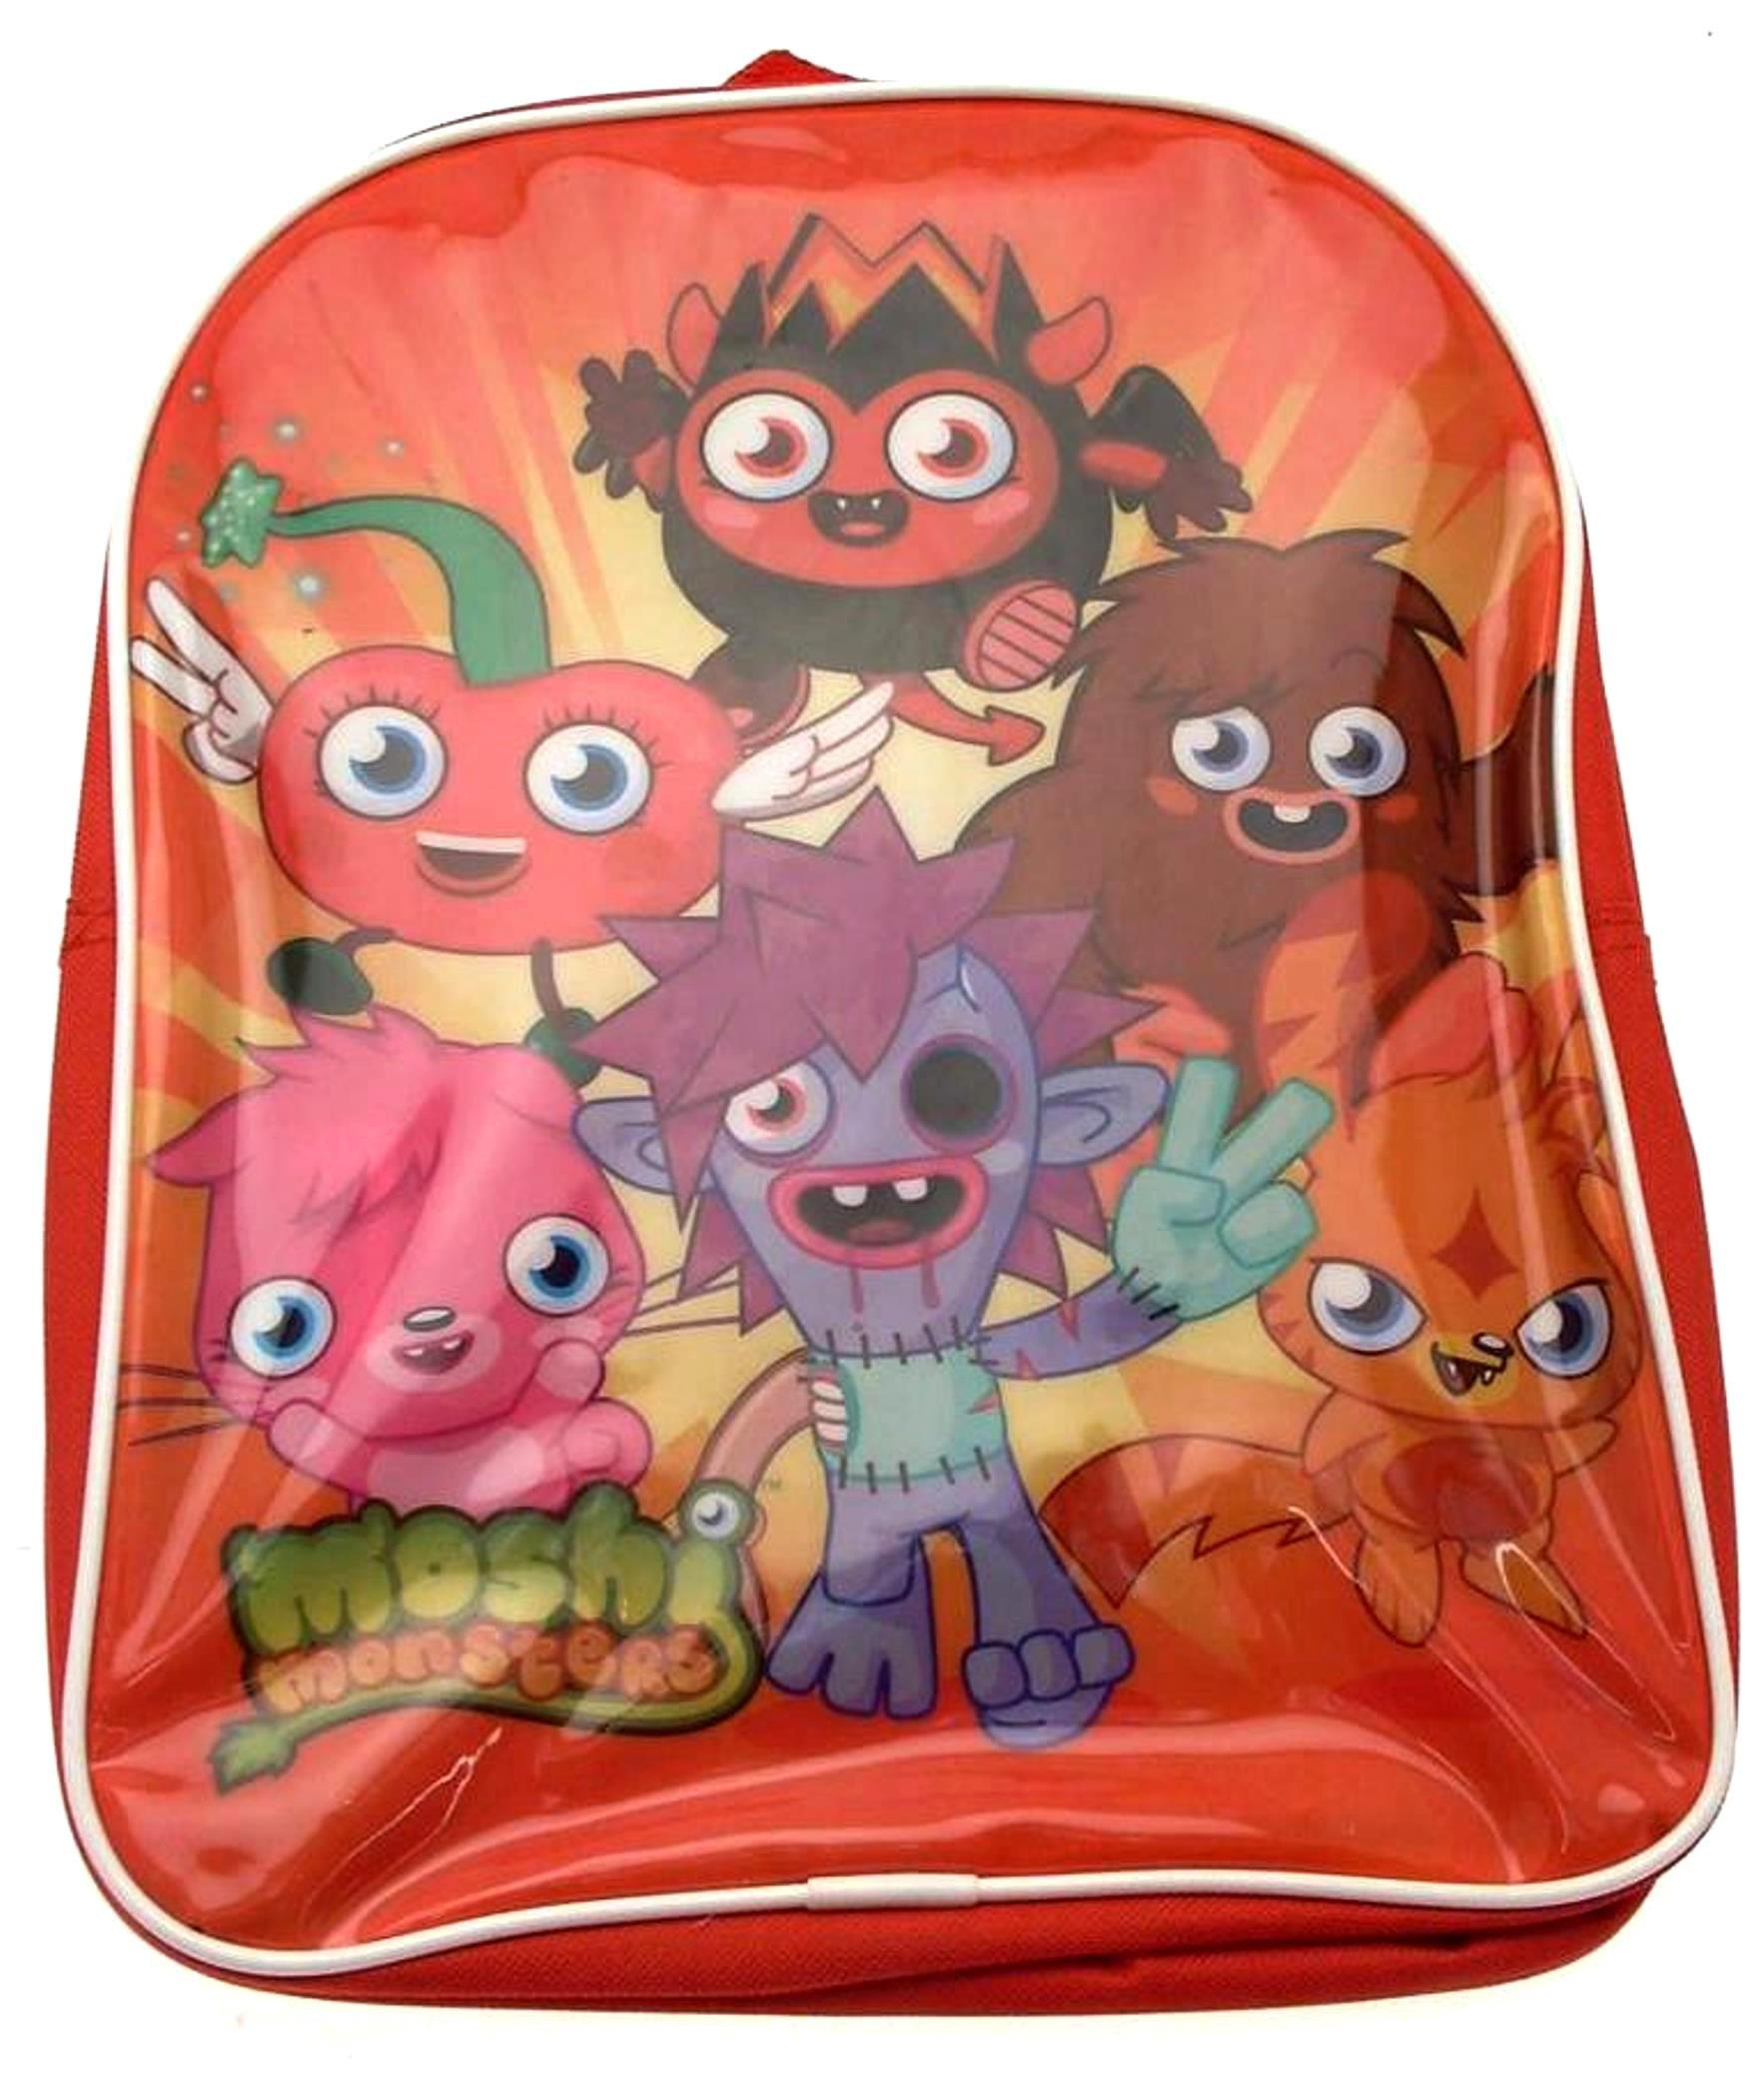 Moshi monsters backpack in red with diavolo katsuma zomer poppet luvli and furi design moshi monsters collectables moshlings and mash up trading cards